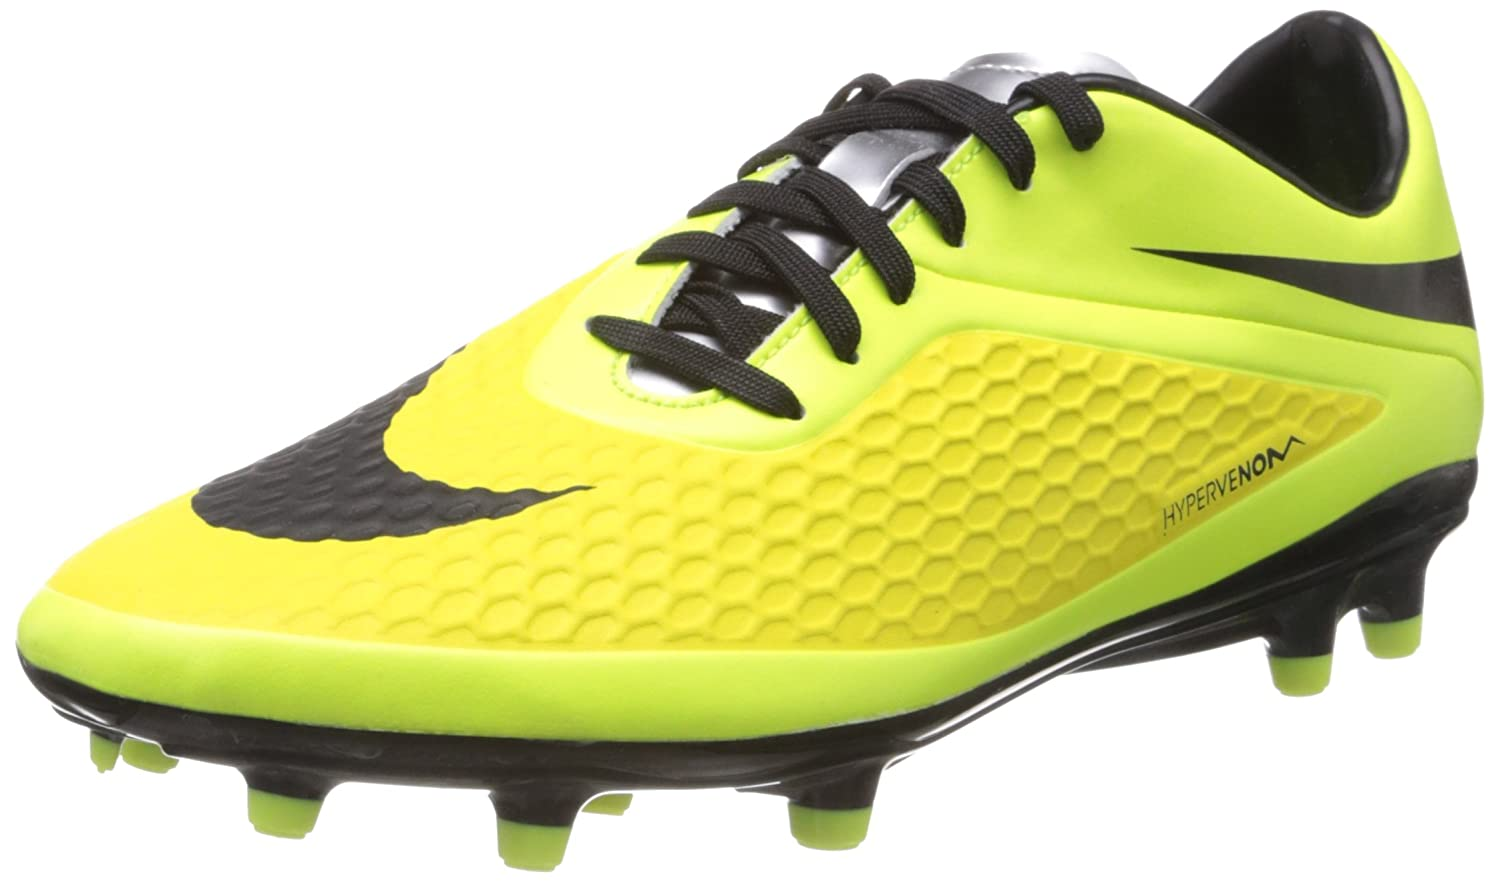 nike hypervenom phelon cleats